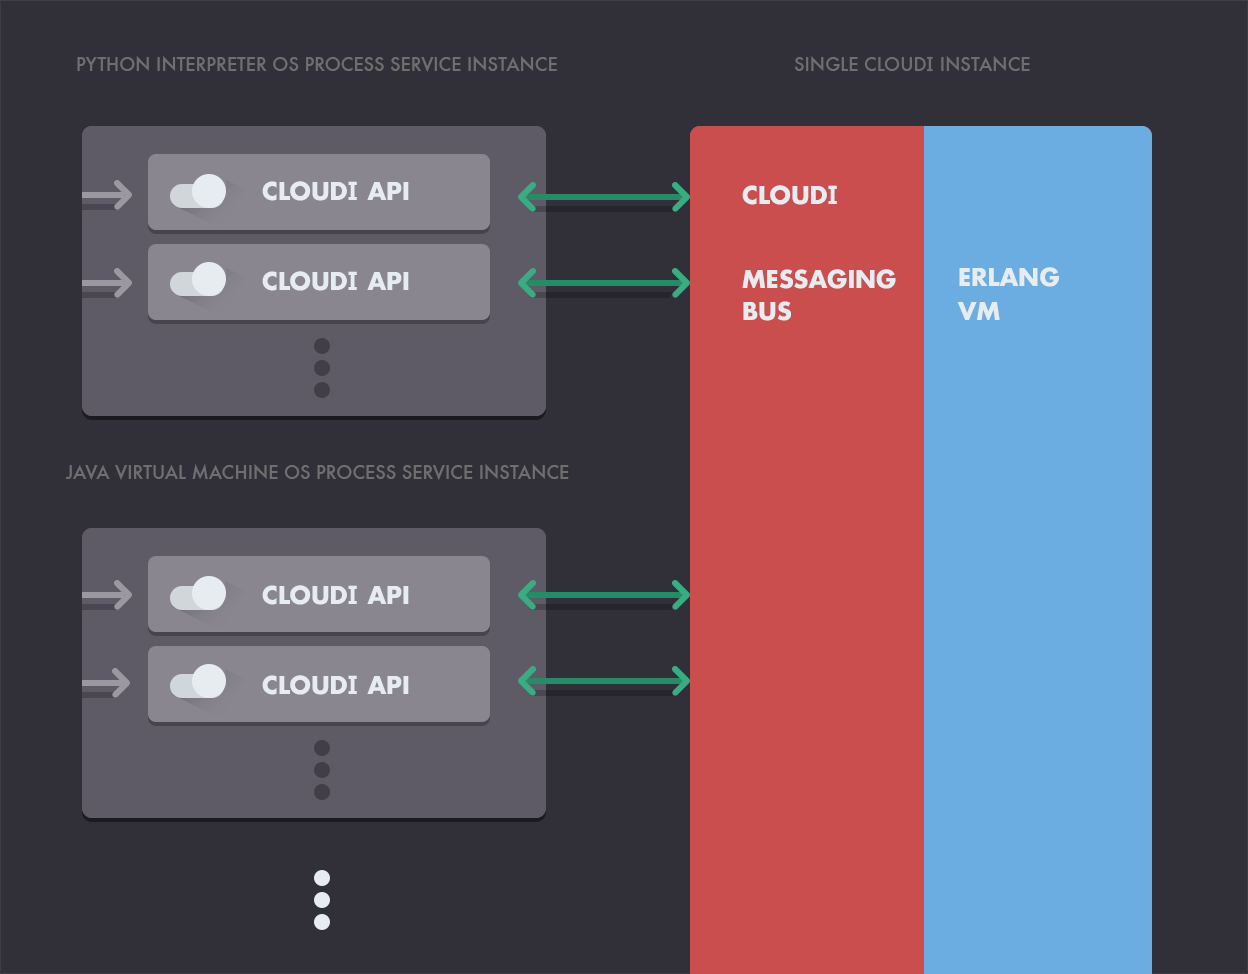 An image depicting the CloudI API interacting with cloud computing instances and the Erlang VM.